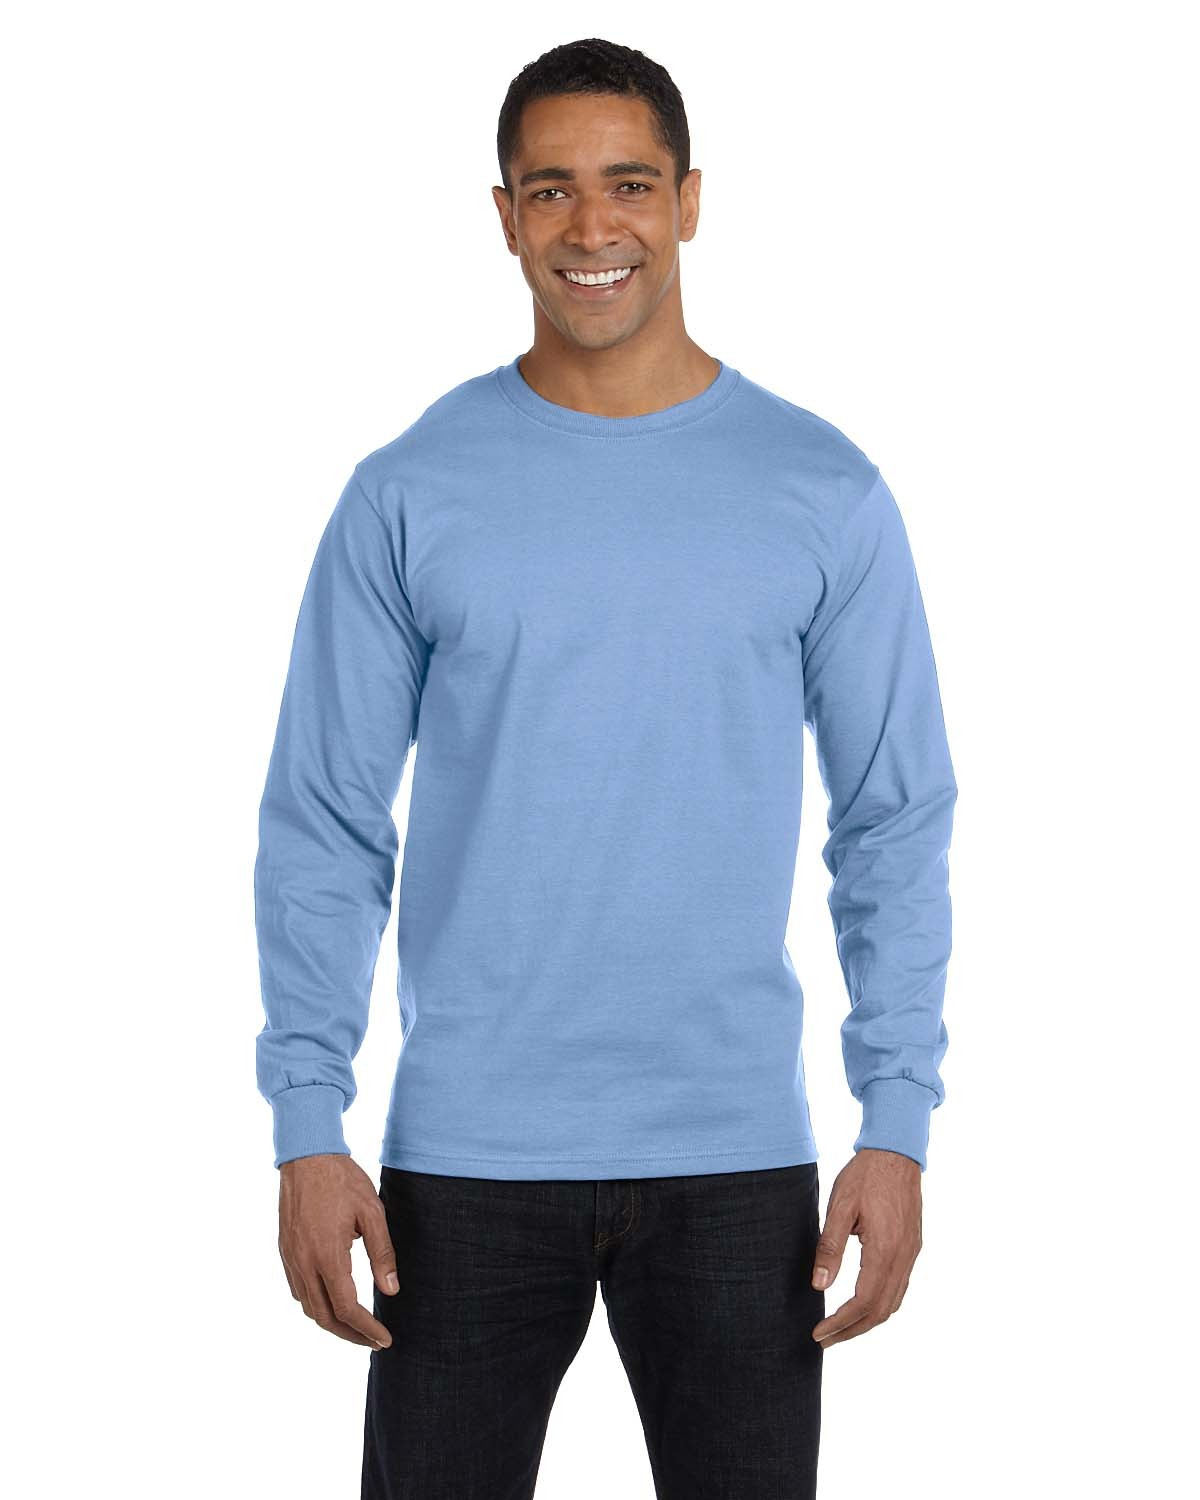 5186 Hanes LIGHT BLUE